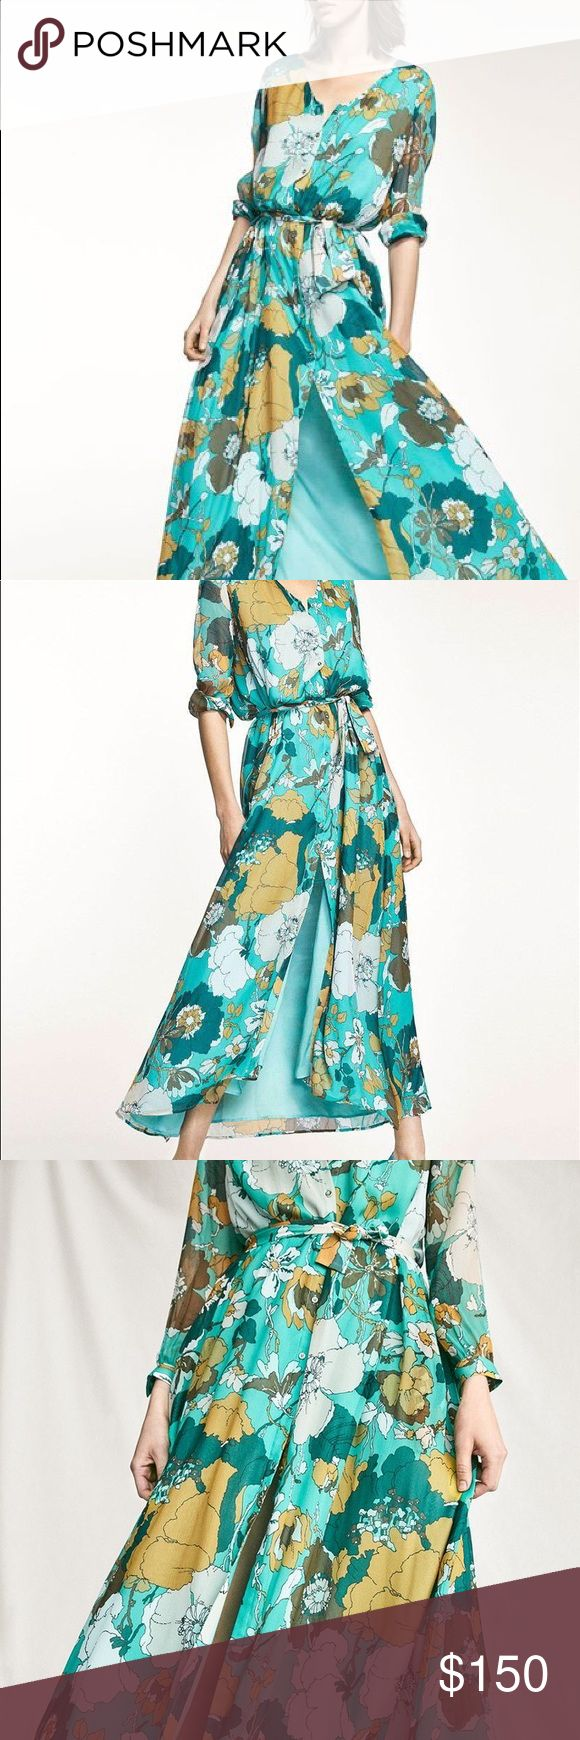 NWT MASSIMO DUTTI TEAL FLORAL PRINT SILK DRESS Floral print button down dress made from 100% mulberry silk fabric. A-line cut, round neck, front button fastening, decorative bow, long sleeves with buttoned cuffs and lining. Massimo Dutti Dresses Midi